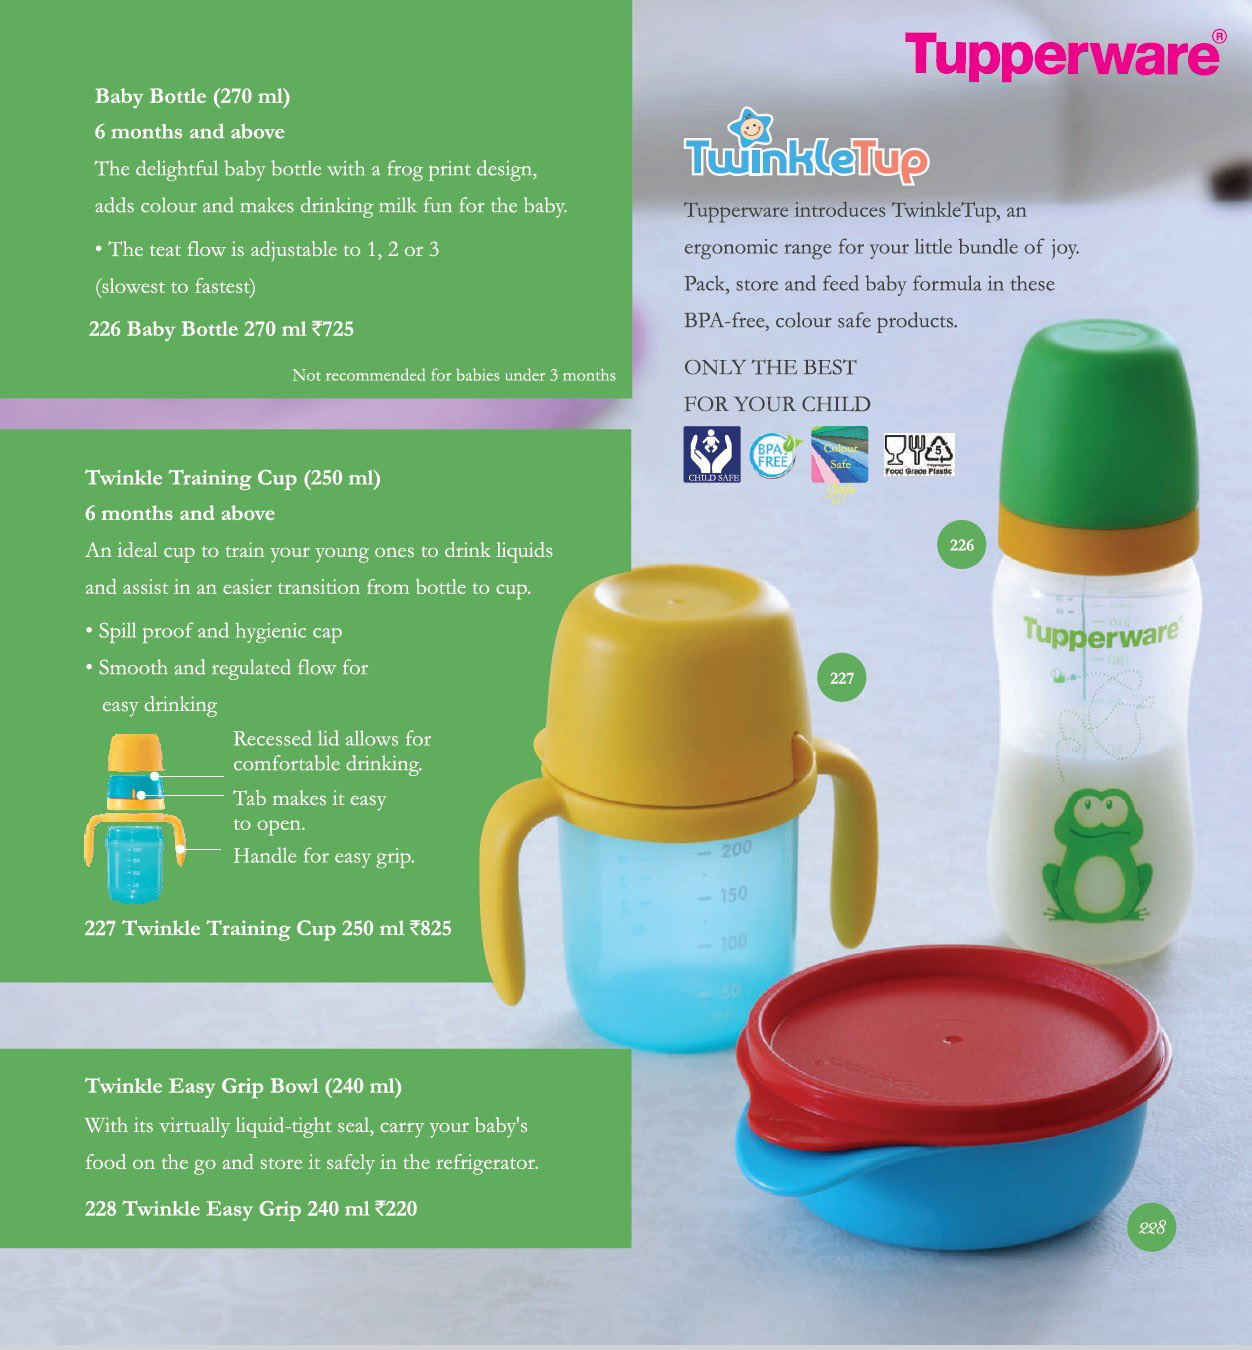 2016 tupperware catalog 2016 tupperware catalog mahiti tupperware tupperware india. Black Bedroom Furniture Sets. Home Design Ideas